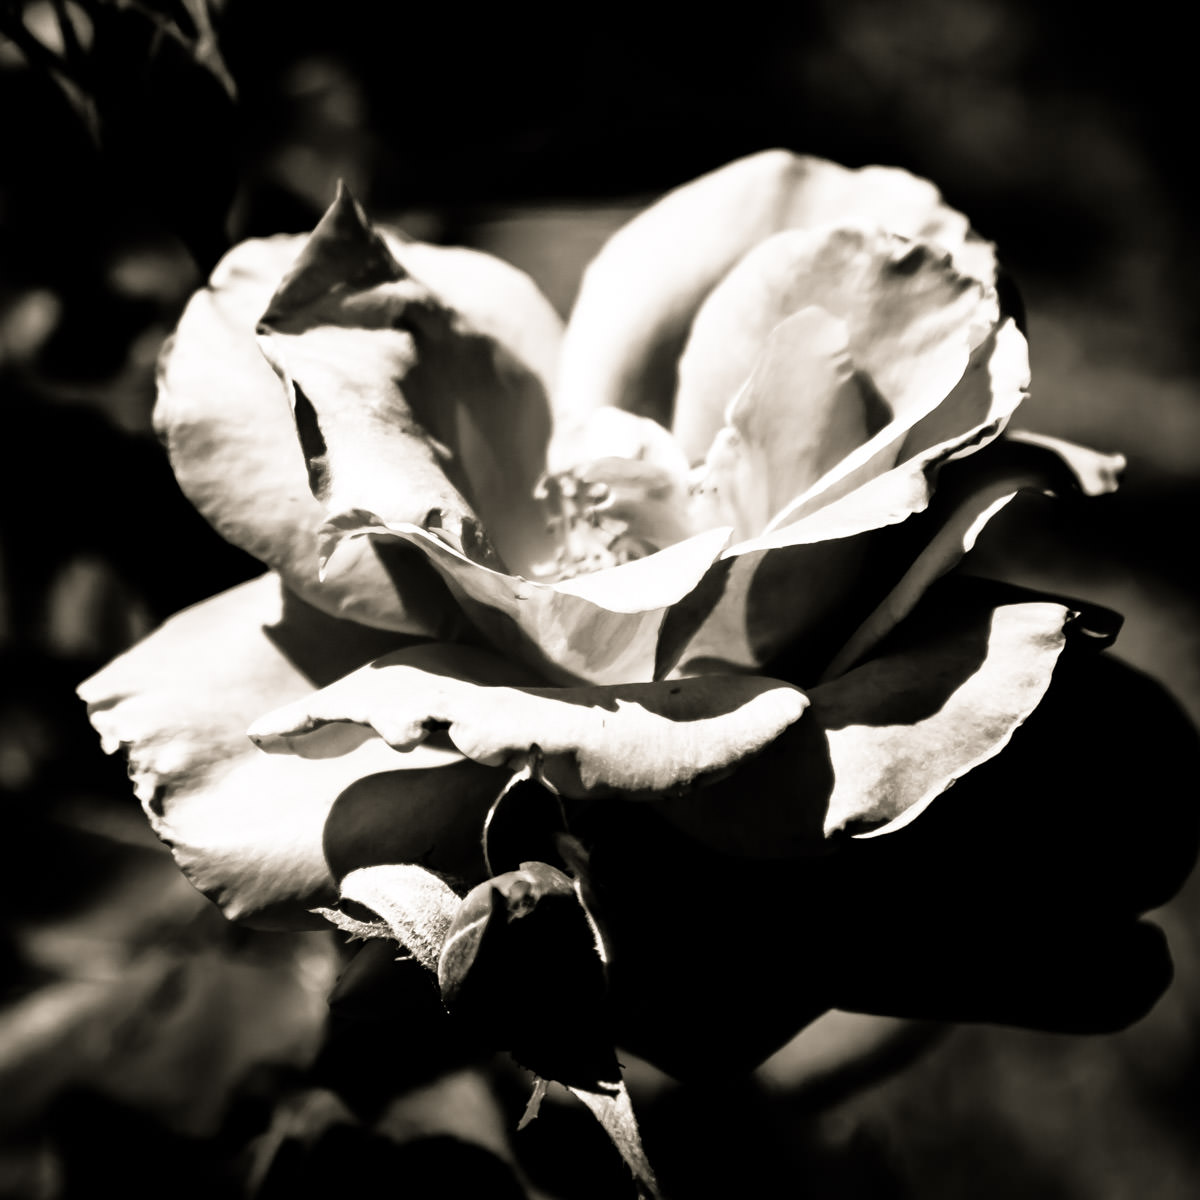 Detail of a rose spotted at the Fort Worth Botanic Garden, Texas.